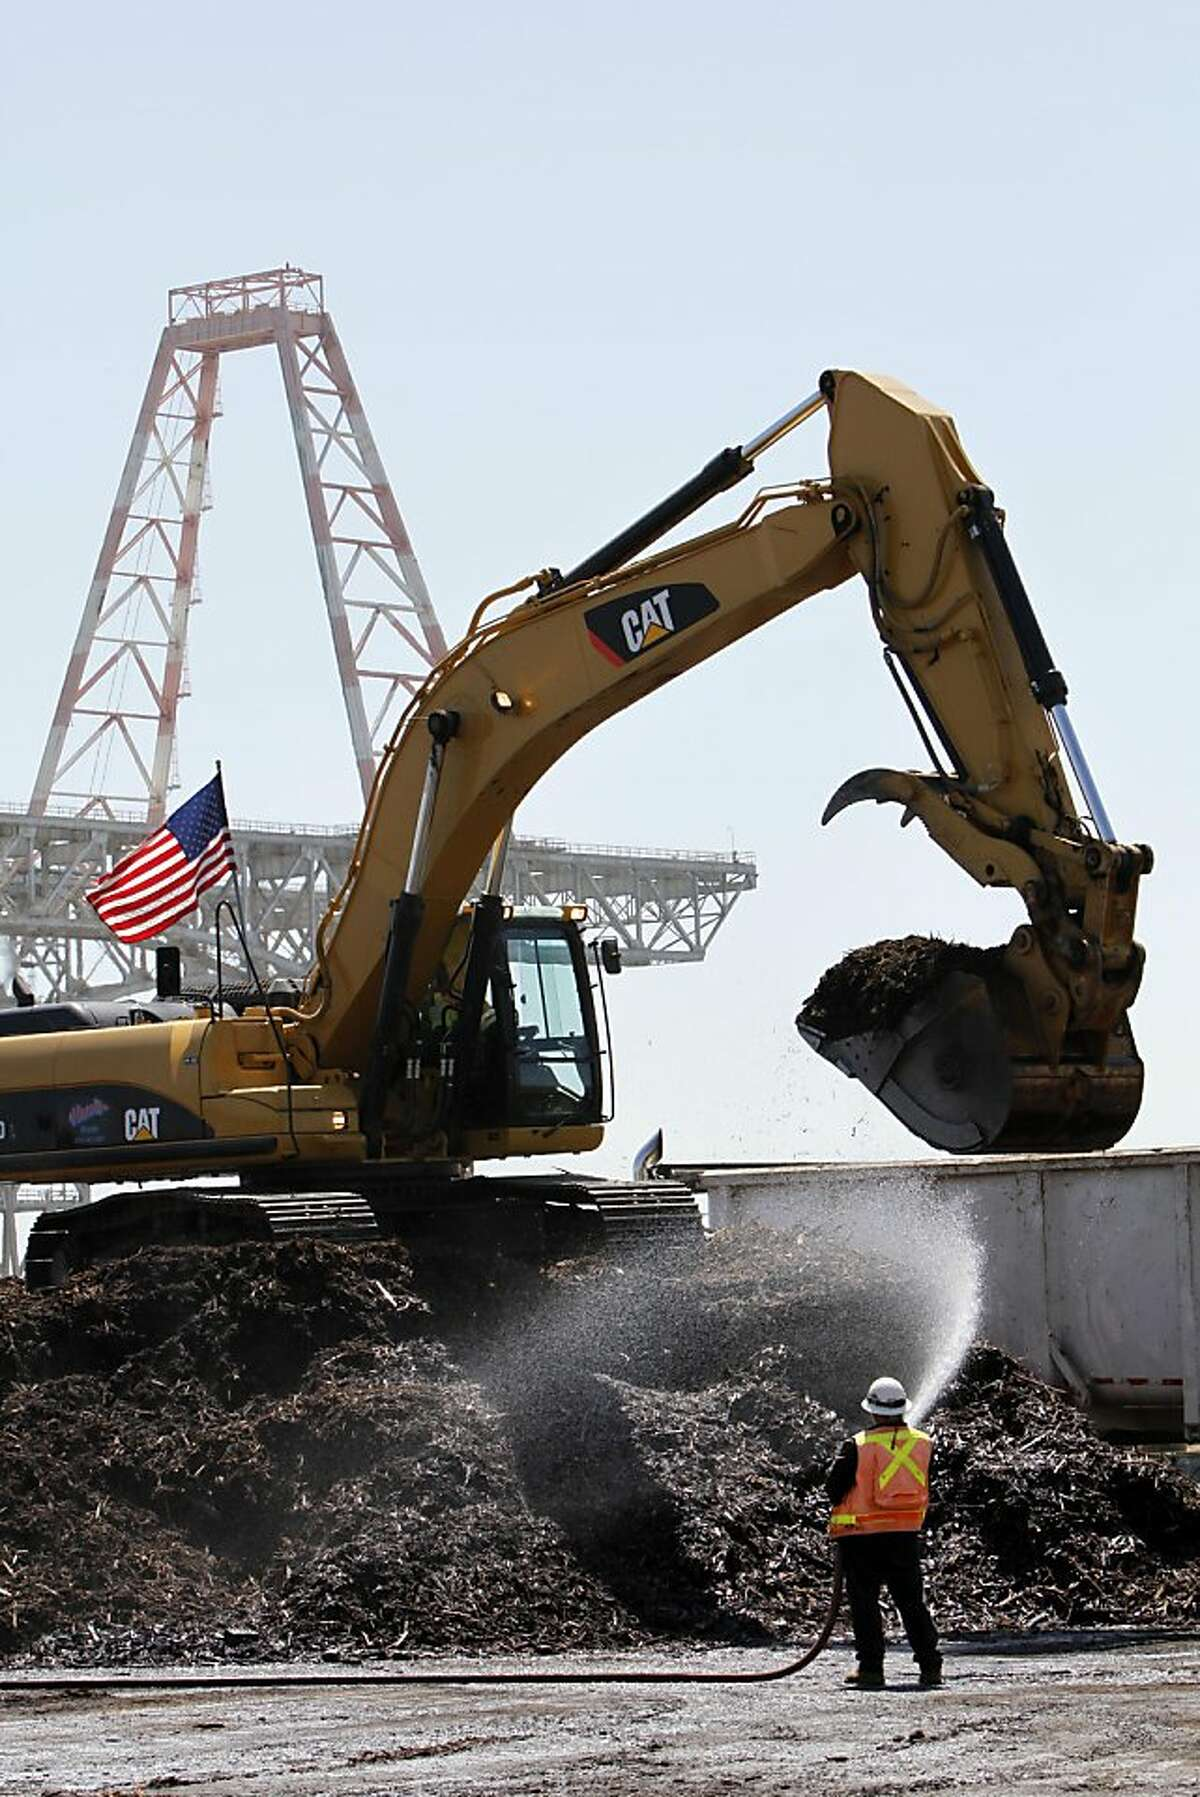 A worker sprays down piles of mulch created from dismantling old piers at Hunter's Point Naval Shipyard in San Francisco, Calif., Thursday, September 1, 2011. The Navy has been working with the EPA to clean up the toxic site.